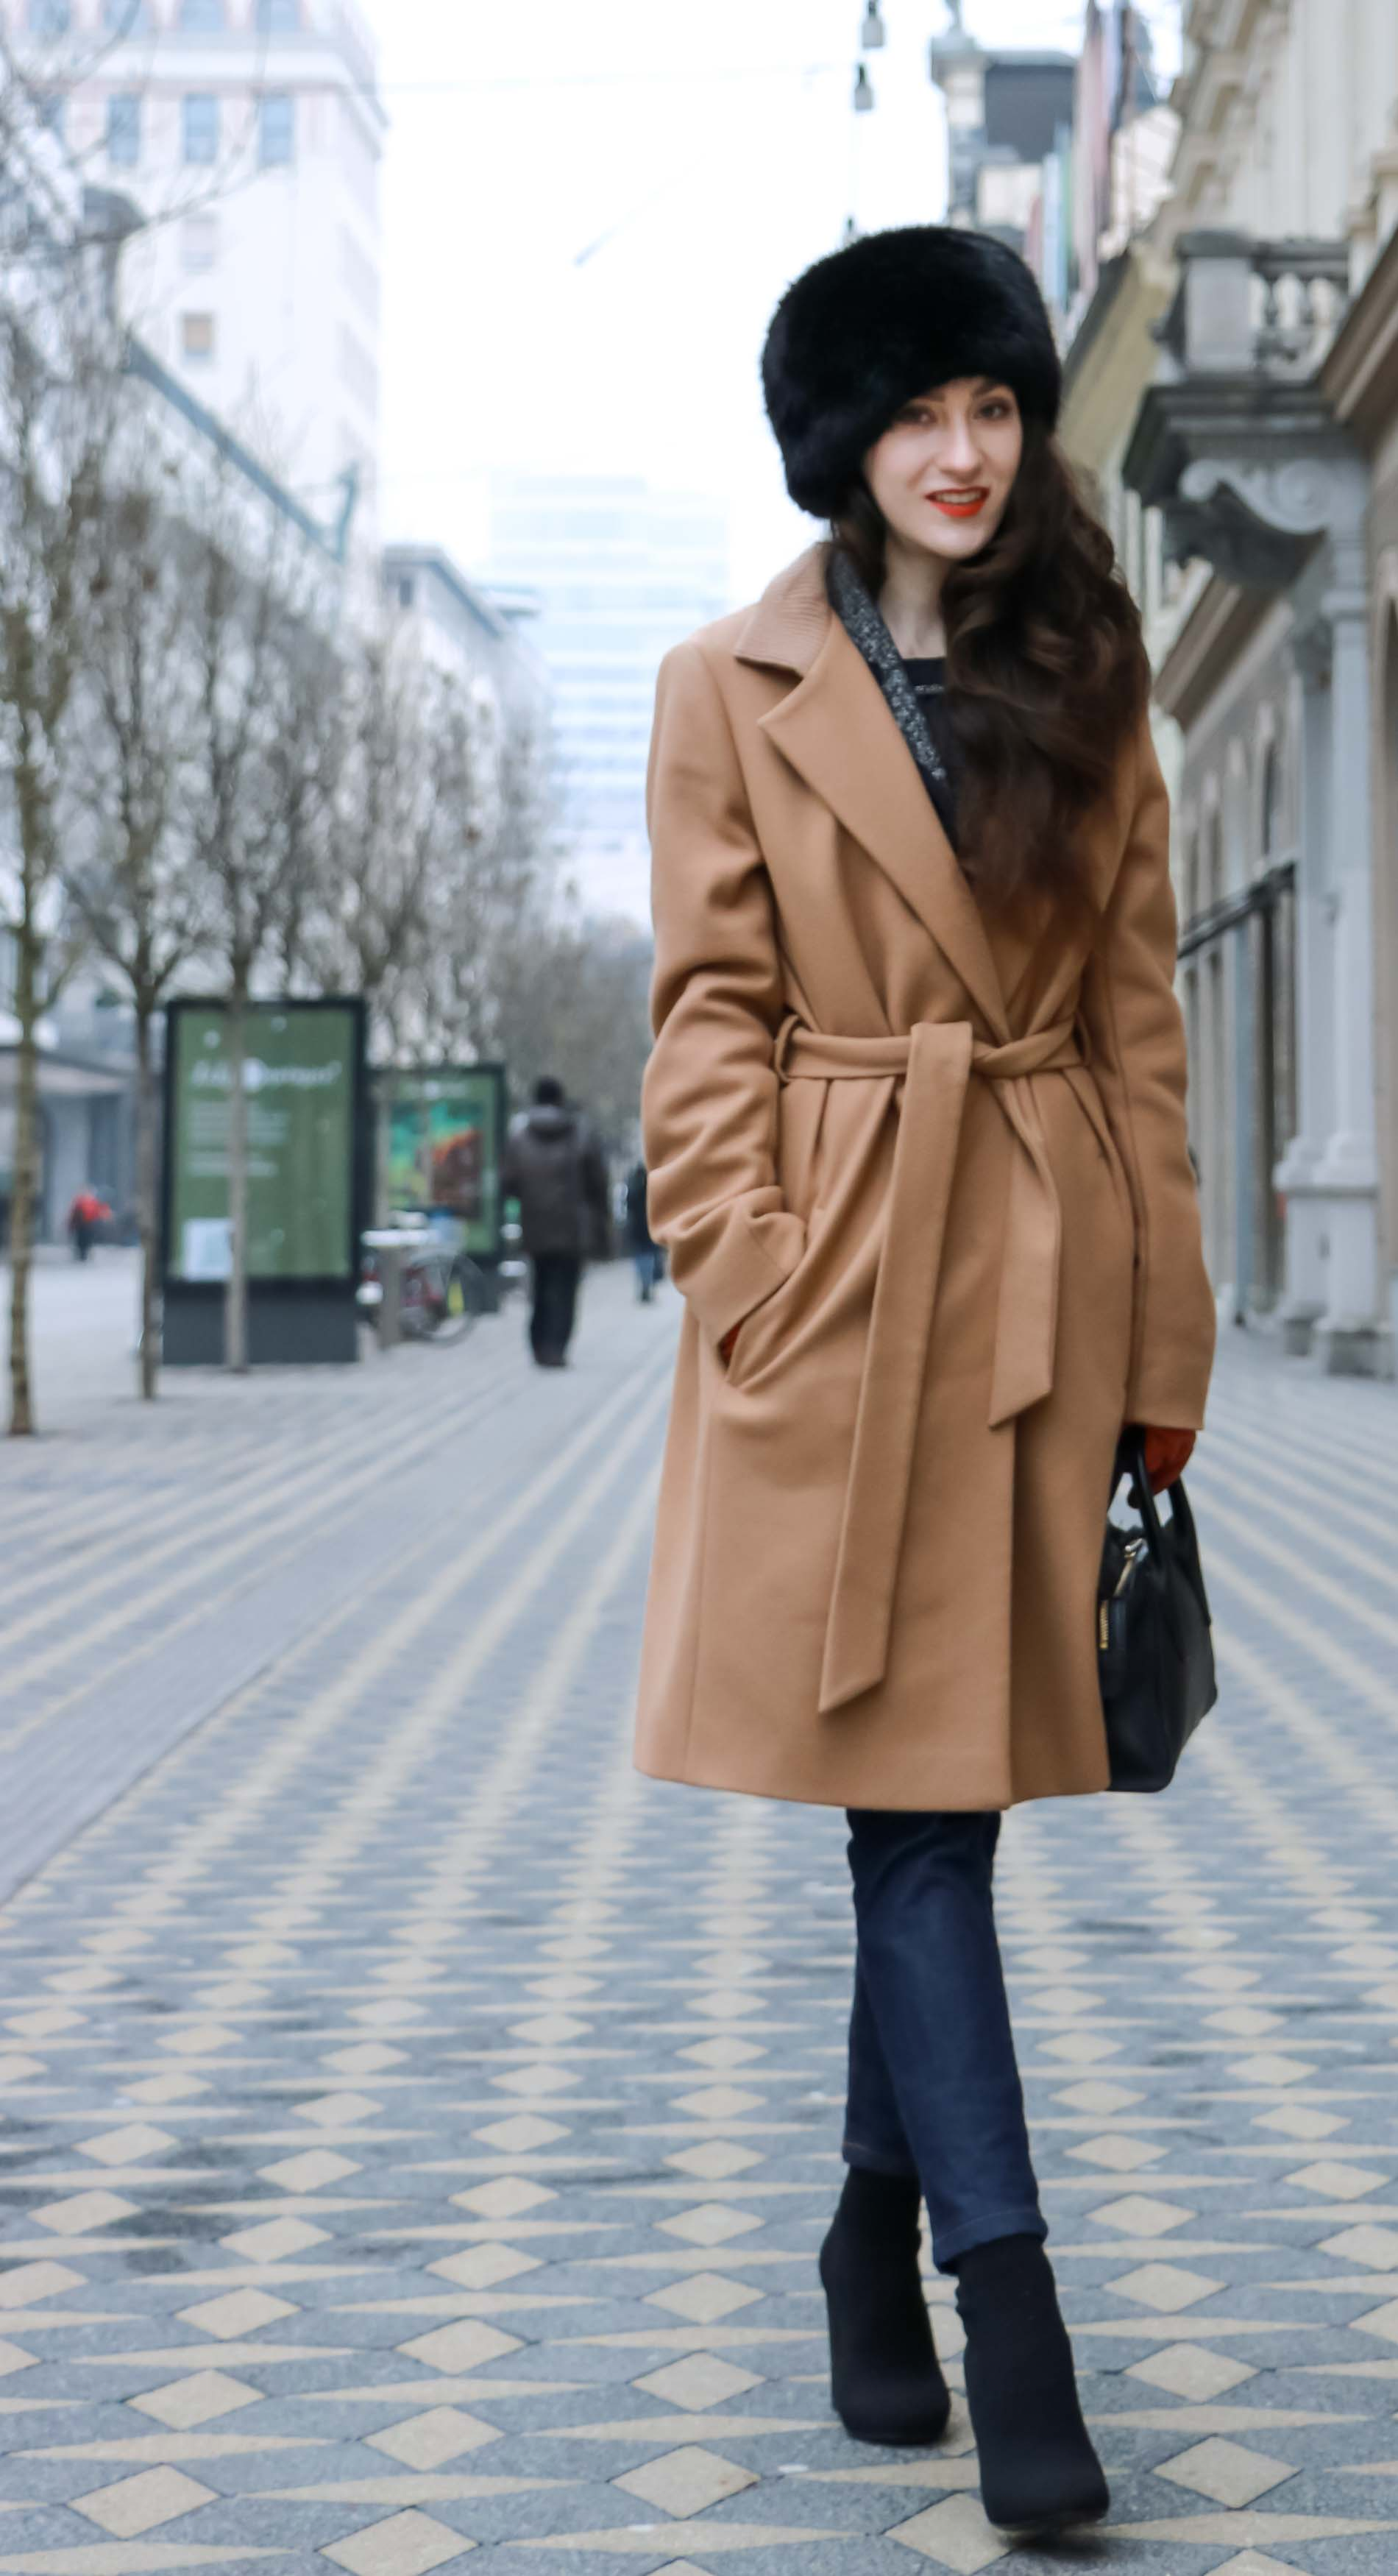 Fashion Blogger Veronika Lipar of Brunette from Wall Street wearing wrap Escada camel coat, A.P.C. dark tapered denim jeans, black sock boots from Elena Iachi, black fur hat and small black top handle bag while walking down the street